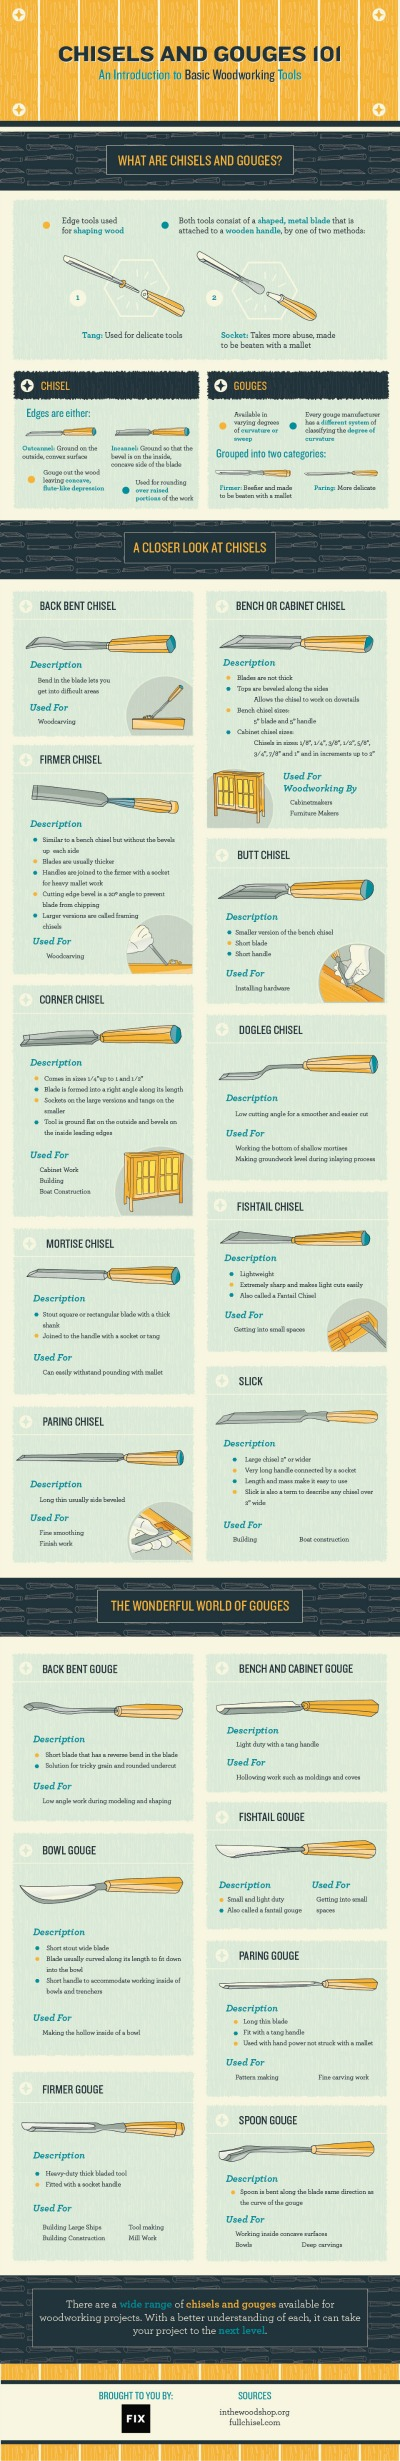 Introduction to Basic Woodworking Tools | Tipsaholic.com #infographic #woodworking #diy #furniture #home